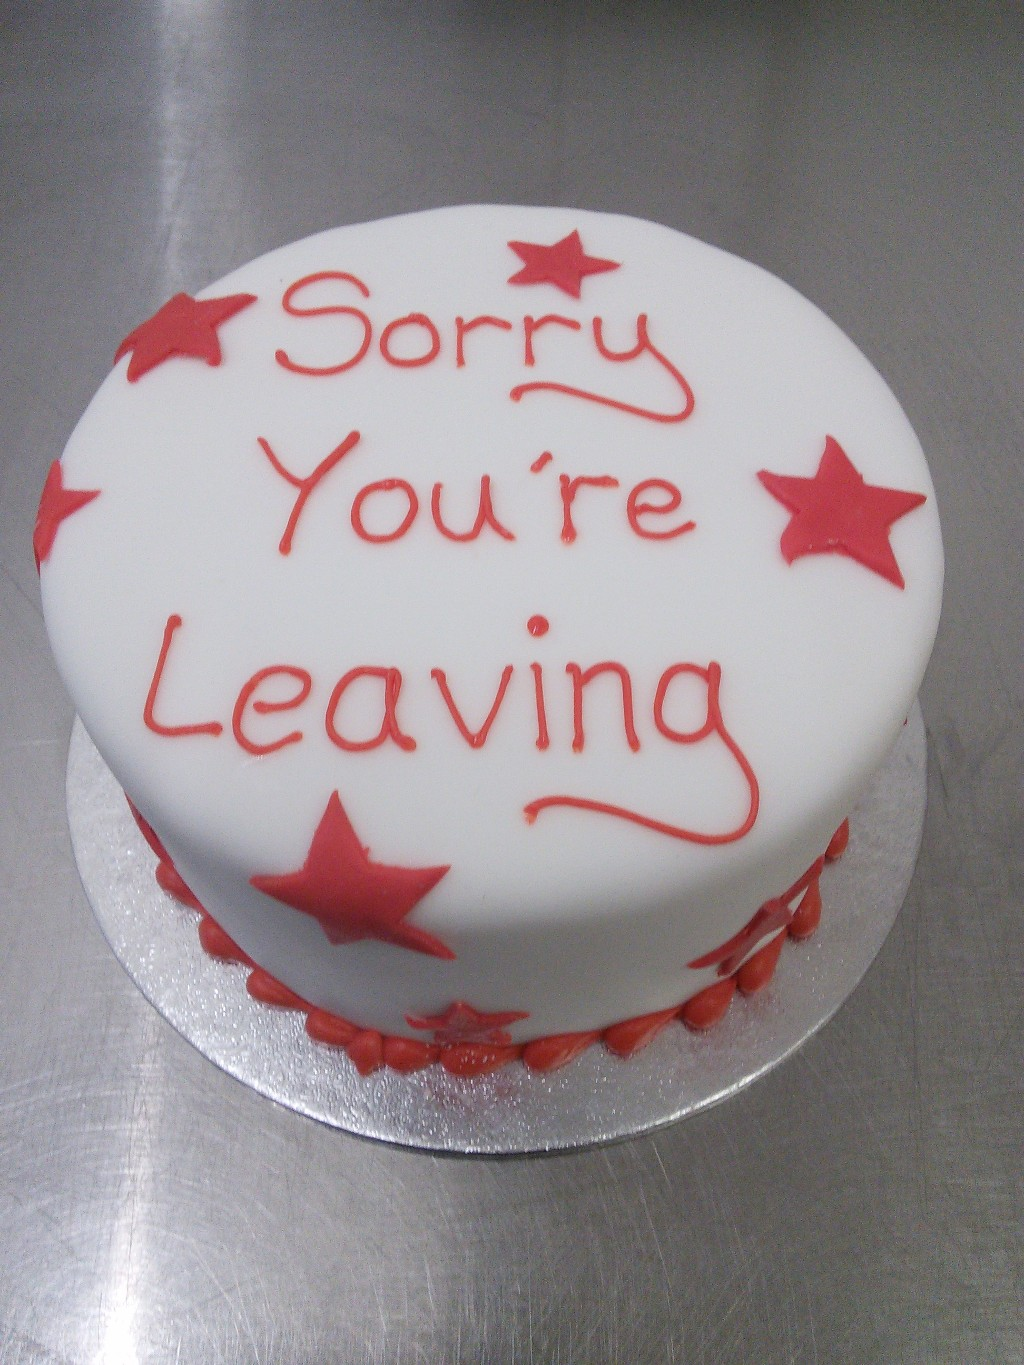 if you re leaving will you: